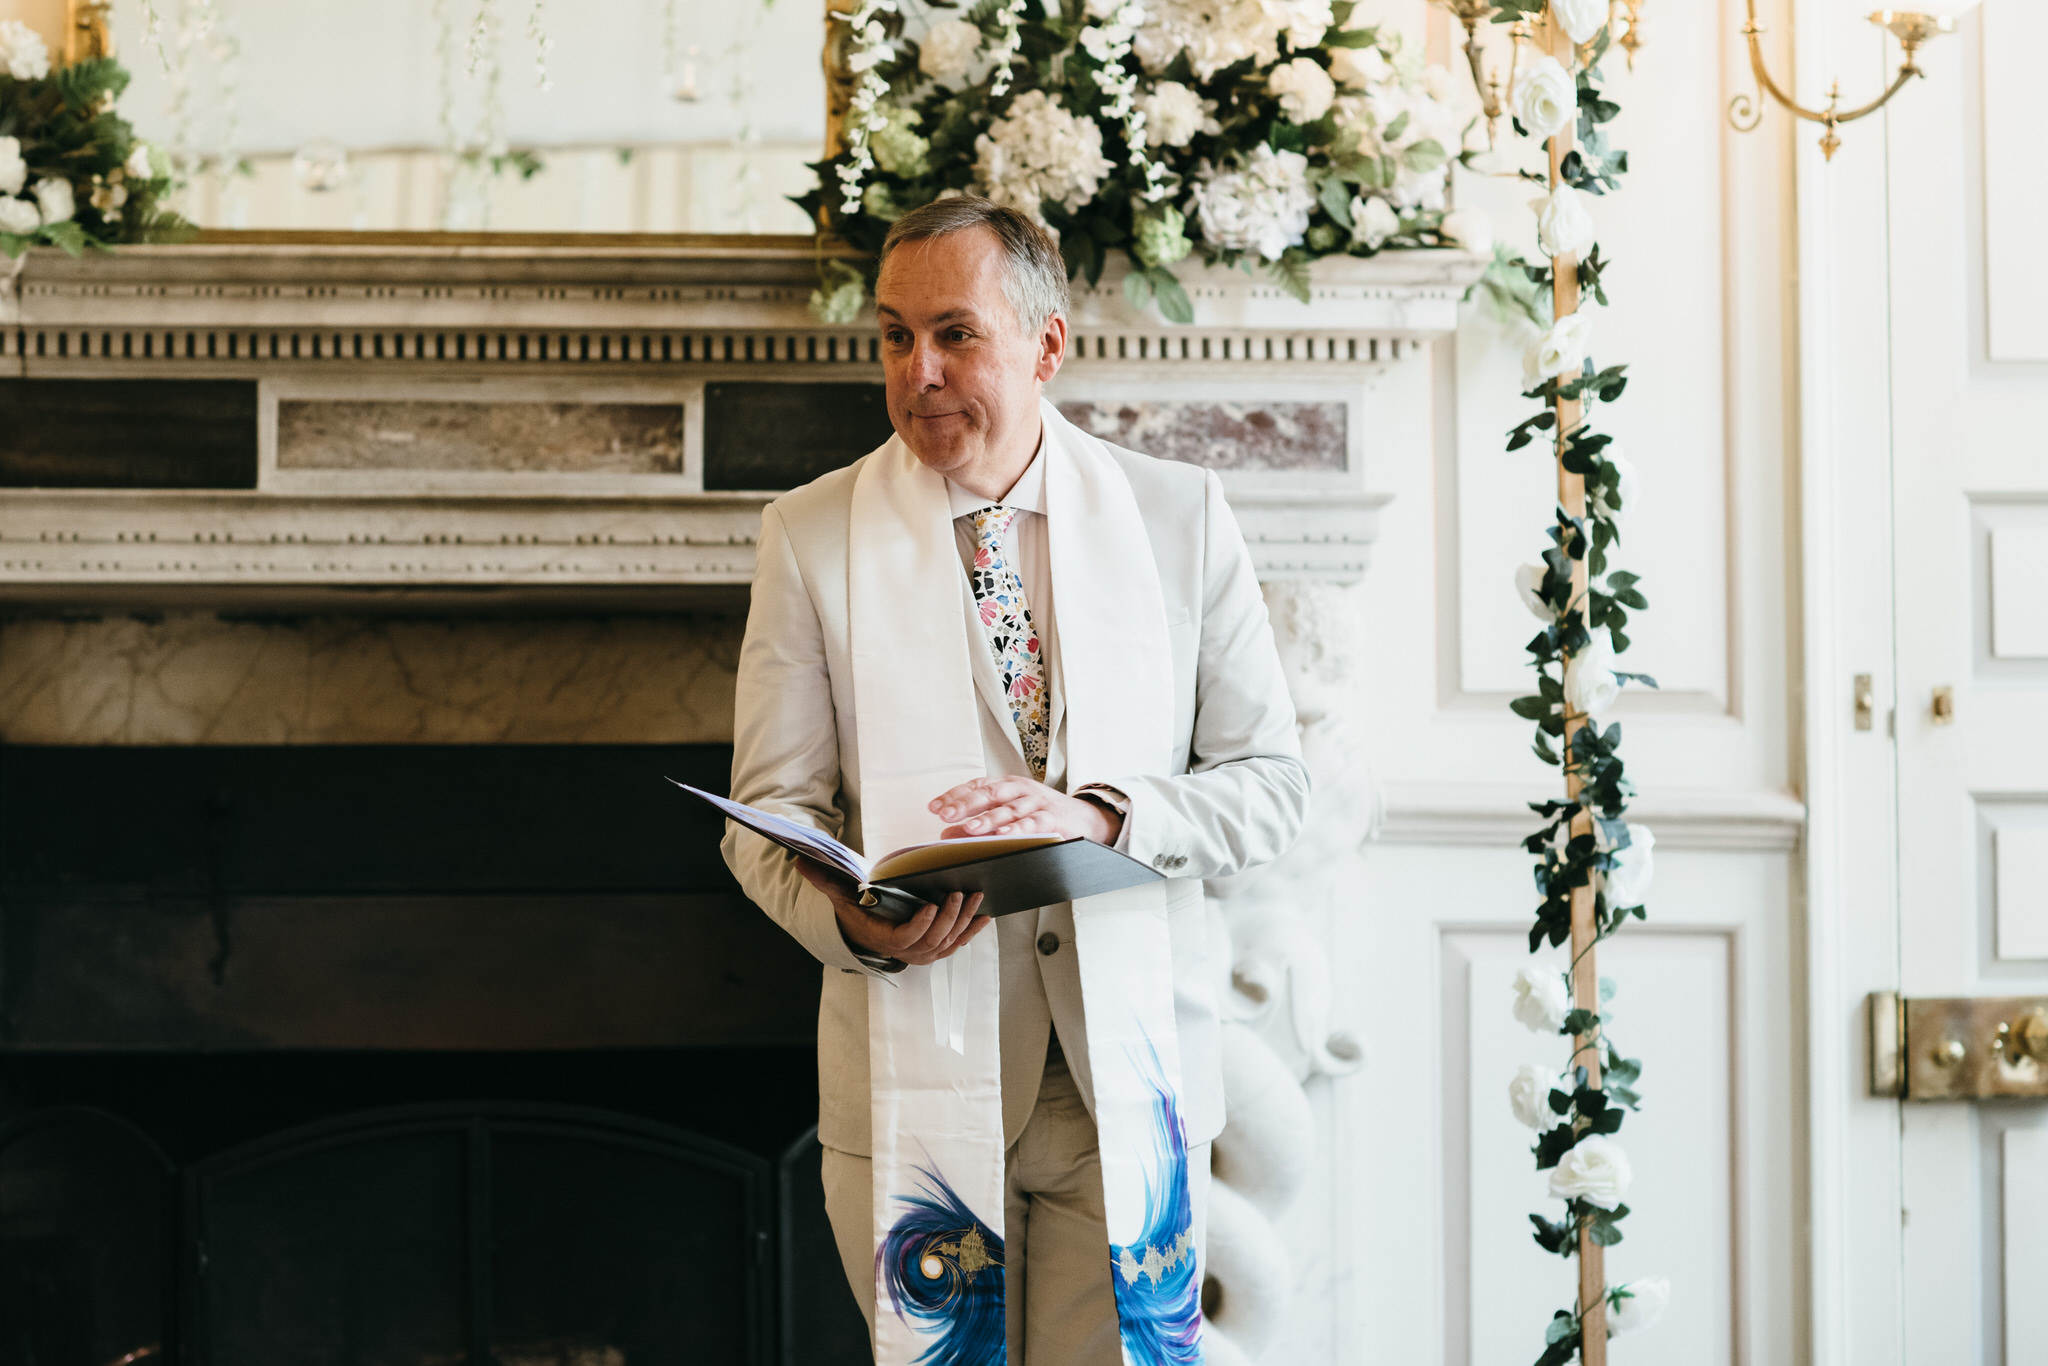 Interfaith wedding celebrant at Gosfield hall